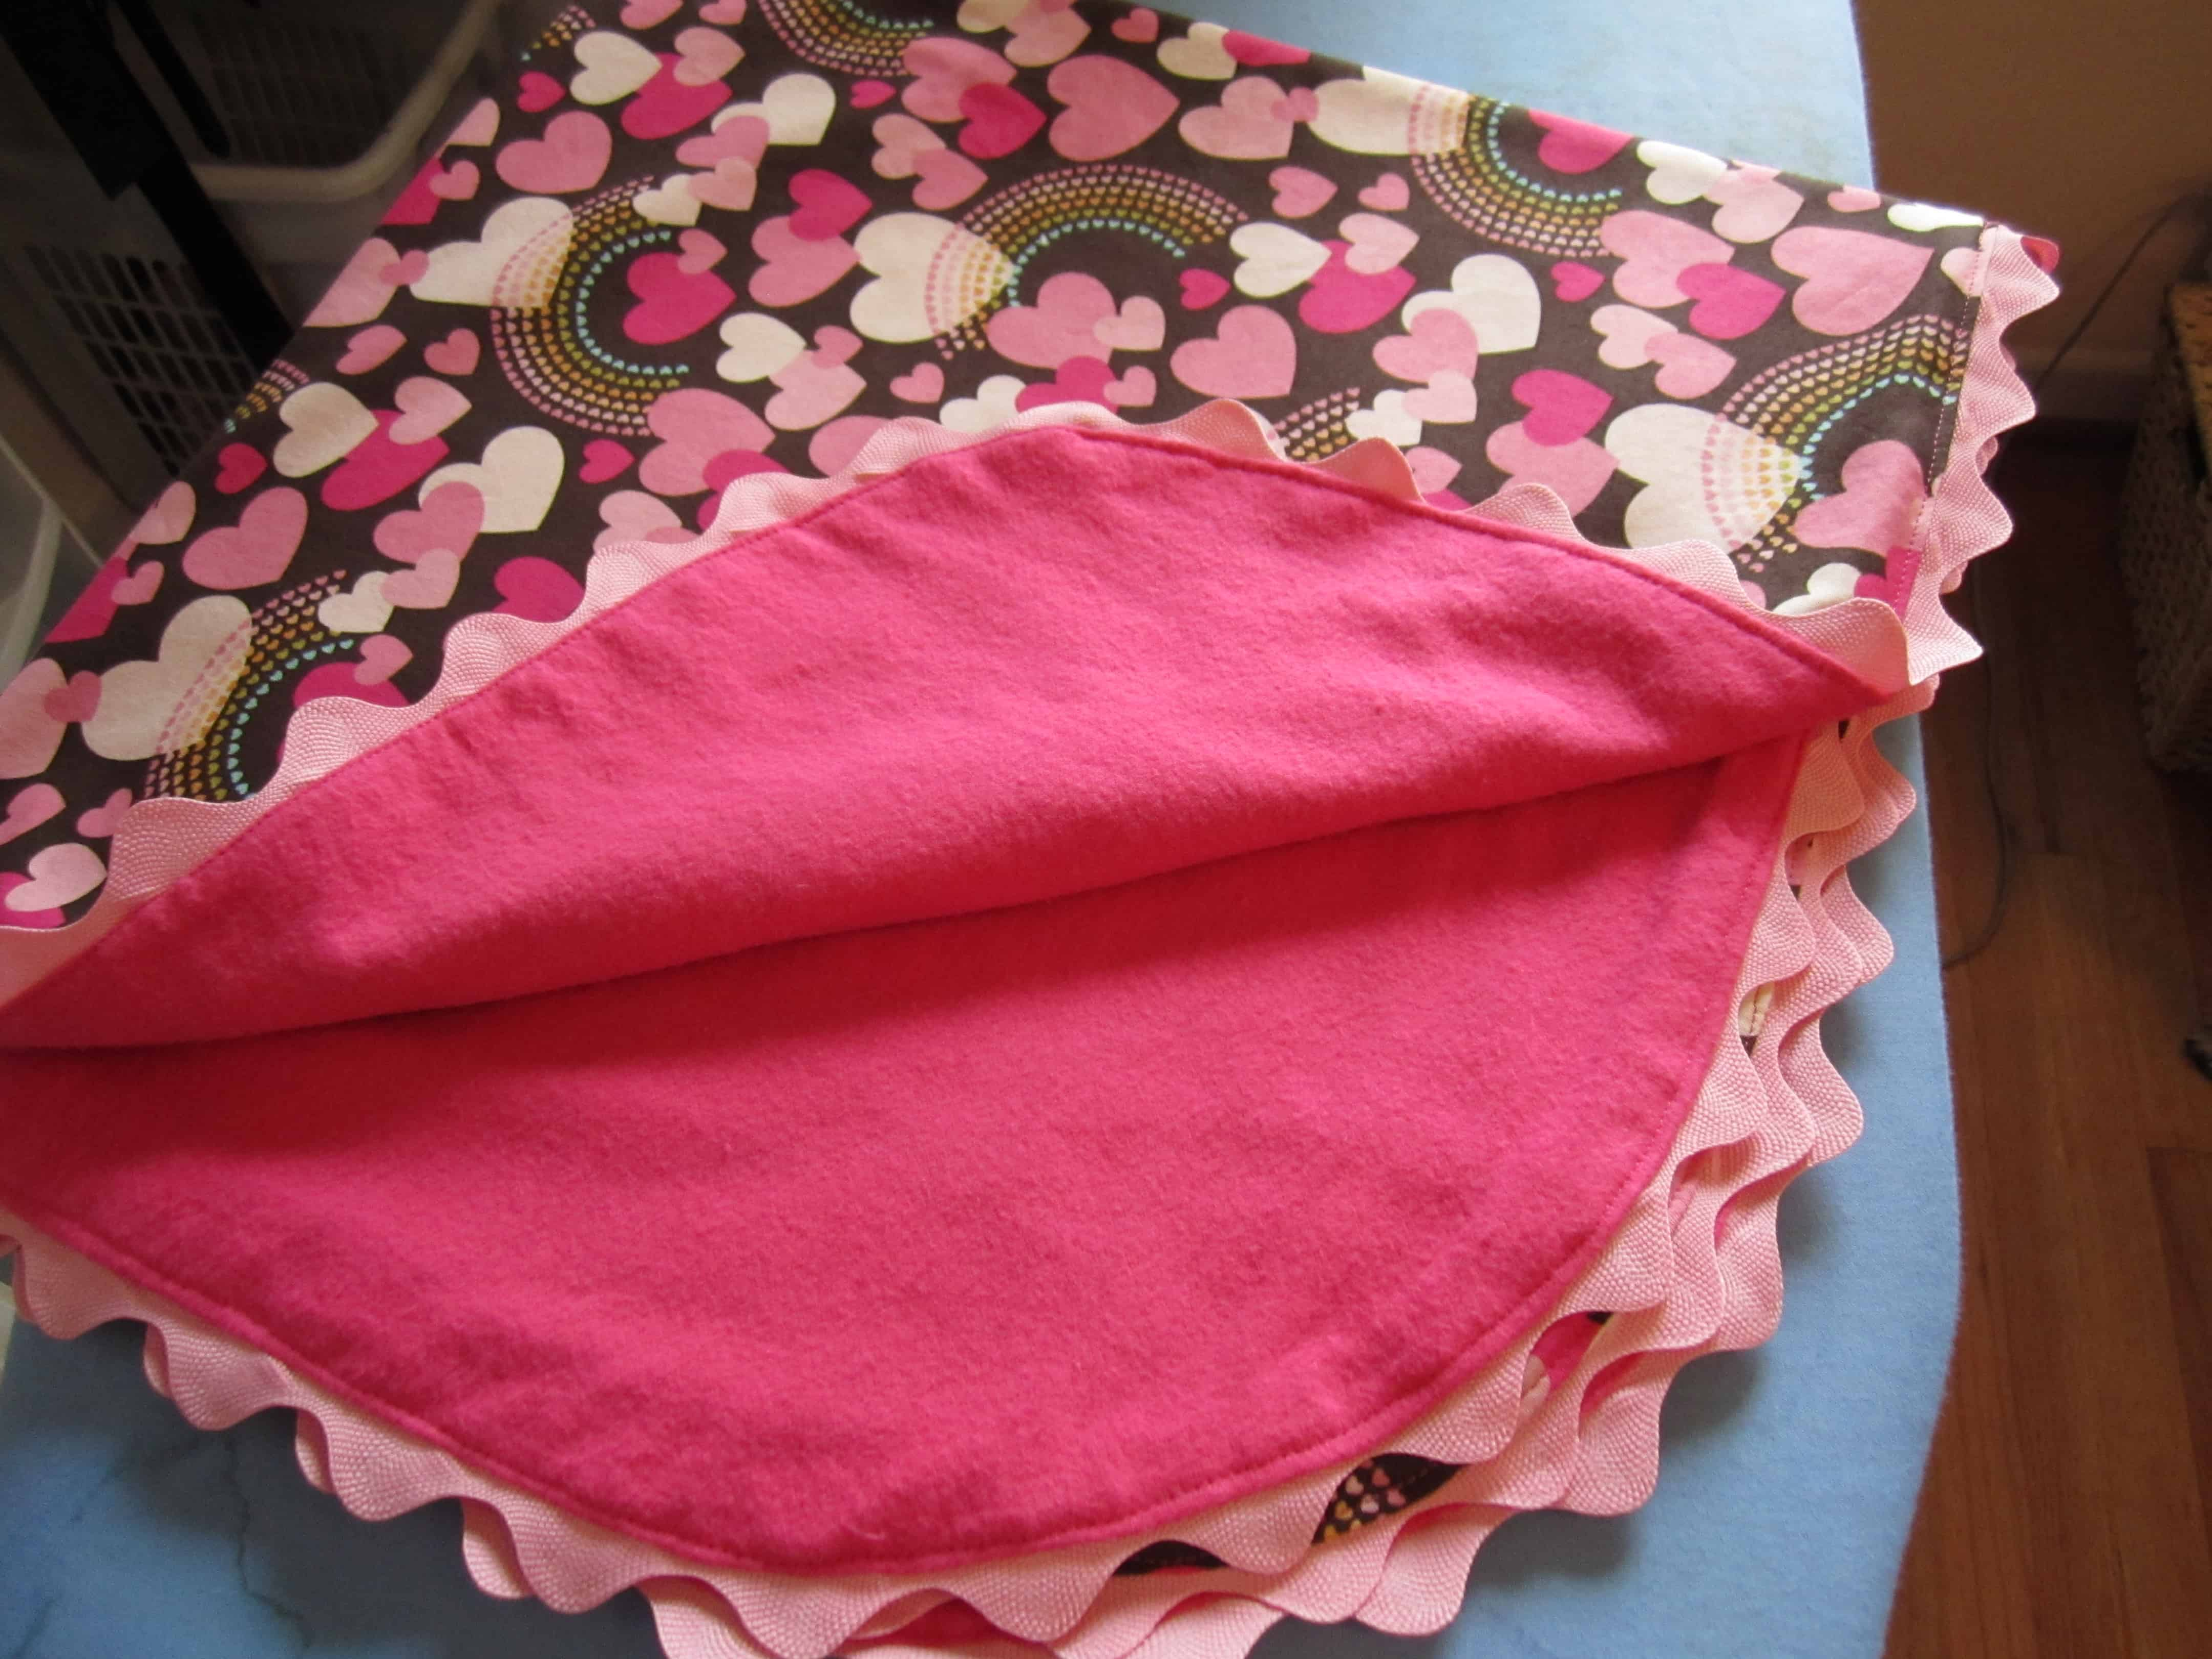 How To Make A Baby Blanket Cozy Diy Blanket Patterns That Will Keep Baby Warm On